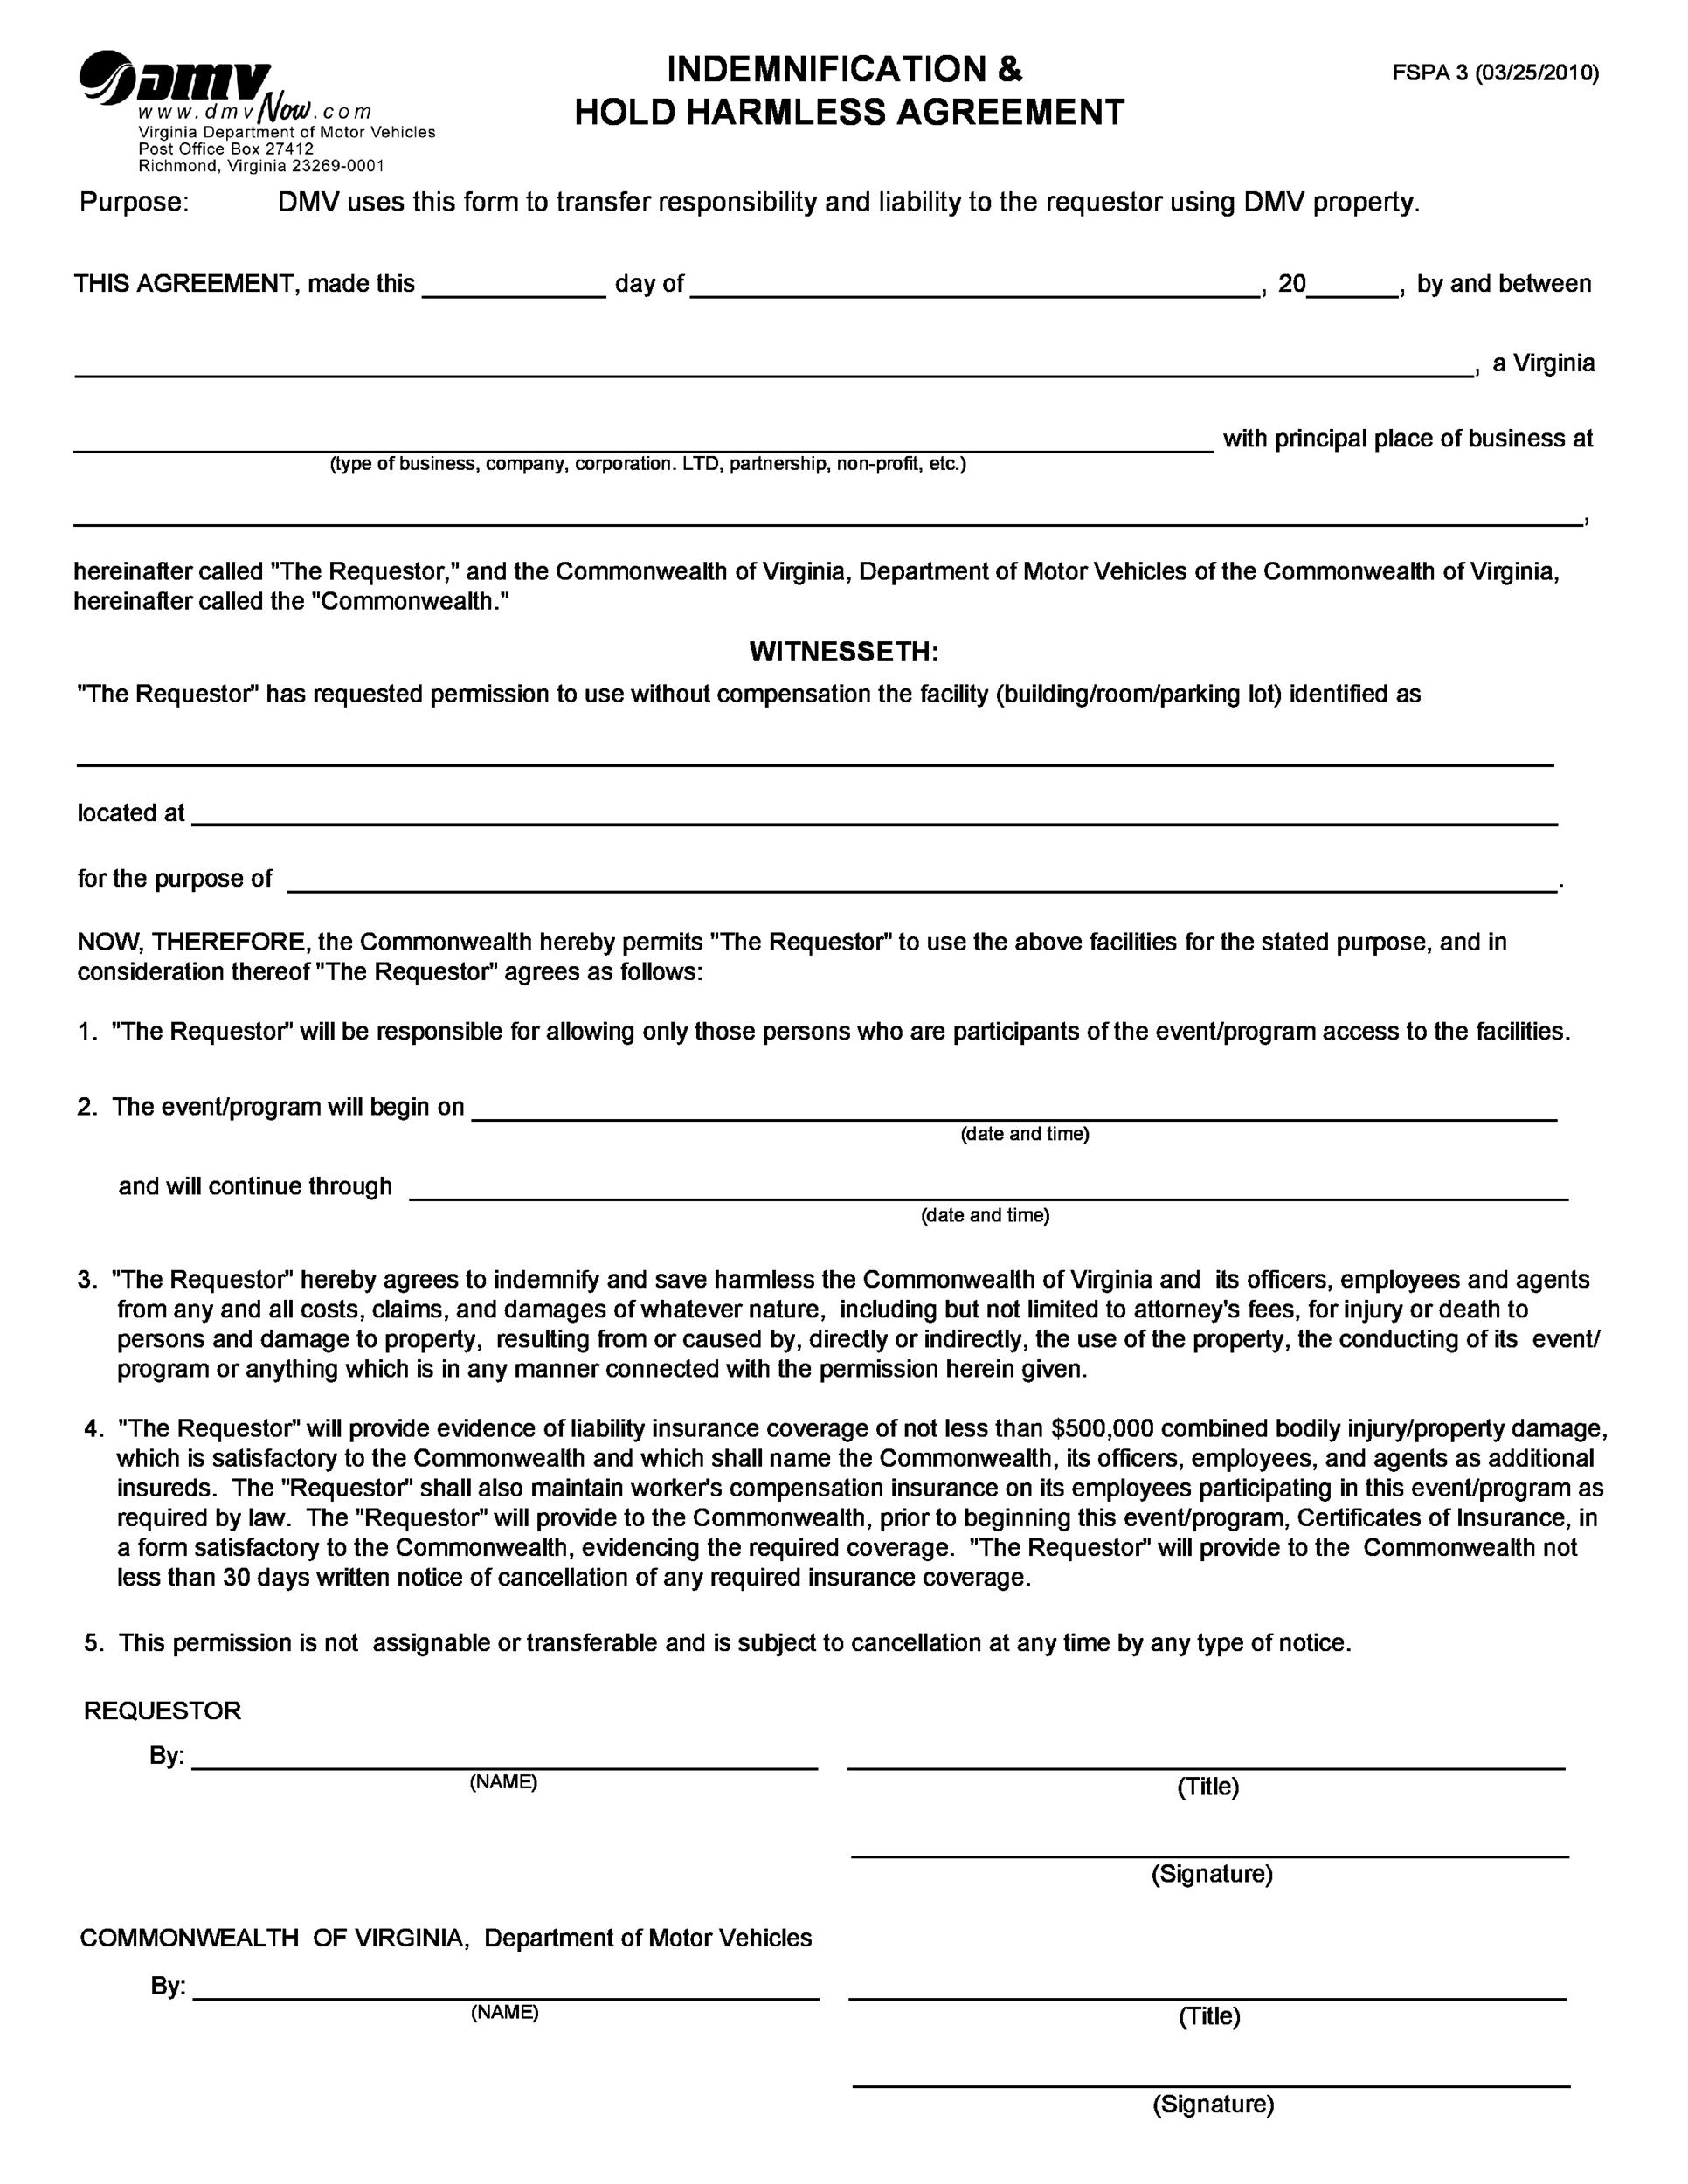 Doc819198 Contract Between Two People Doc600925 How to Write – Partnership Agreement Between Two Individuals